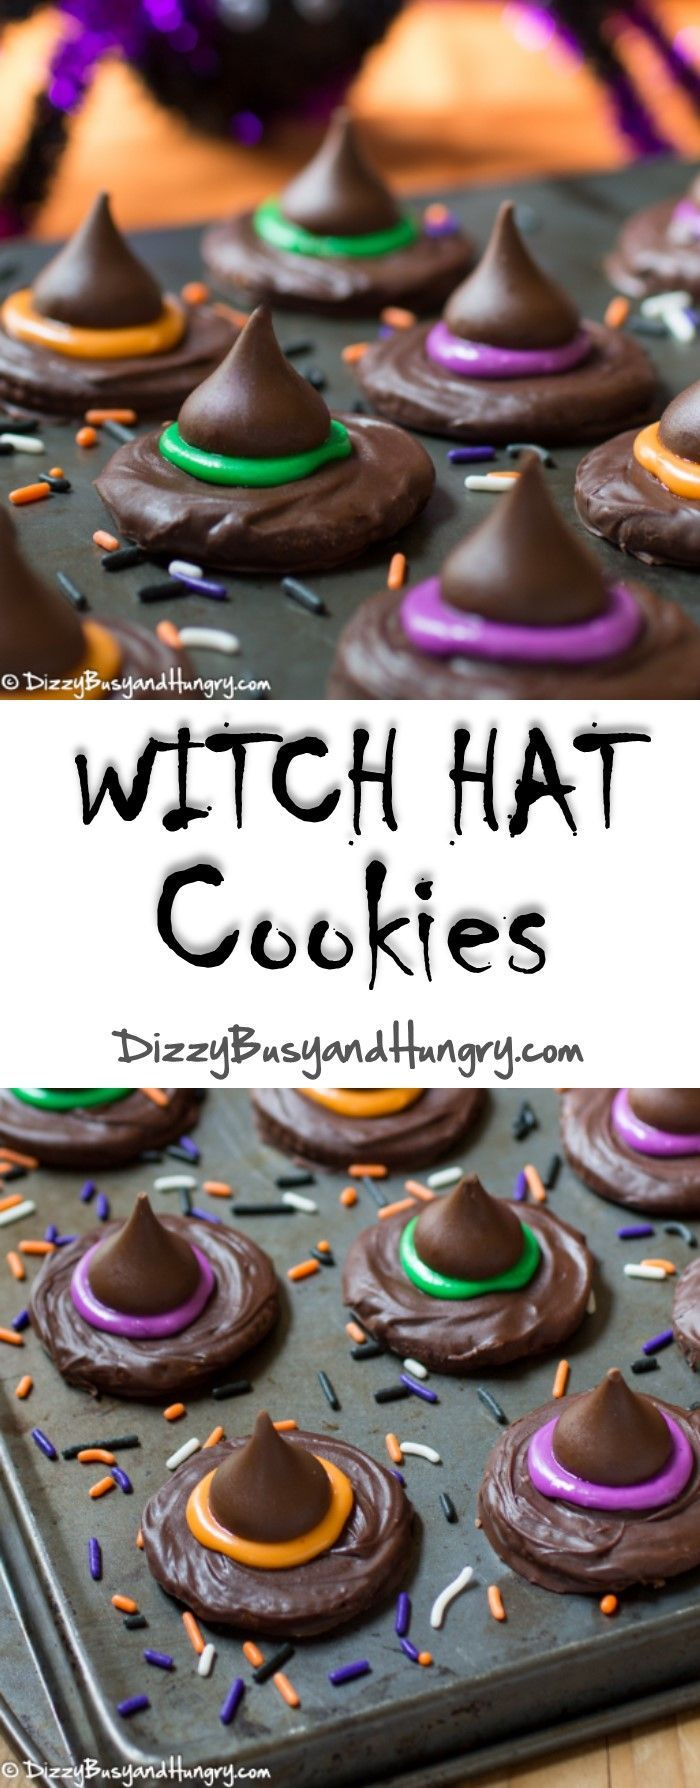 witch hat cookies - Halloween Casserole Recipe Ideas